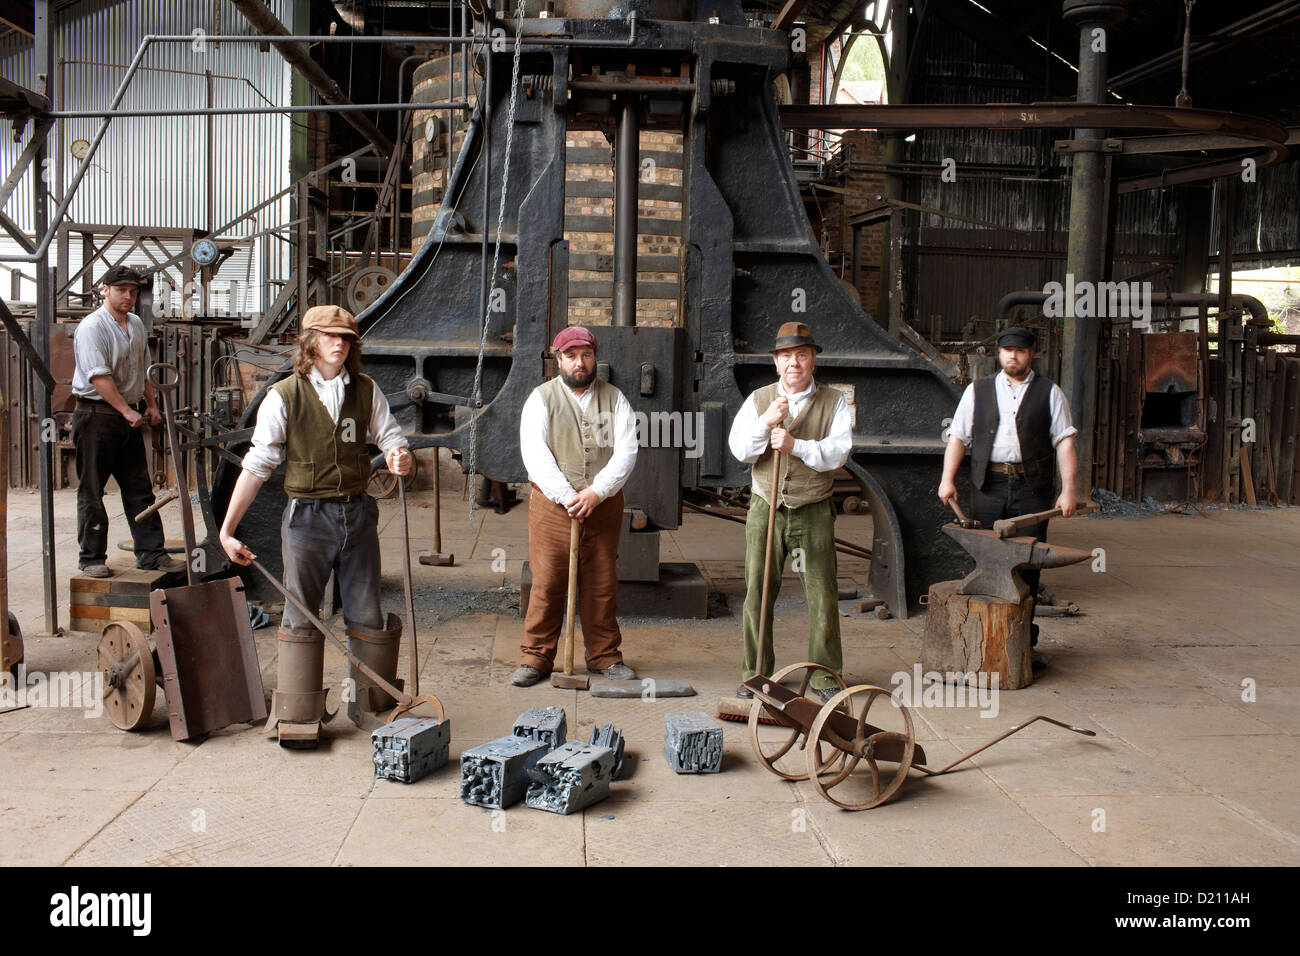 Actors in ironworks at The Iron Gorge Museums, Blists Hill Victorian Town, Ironbridge Gorge, Shropshire, England, Stock Photo